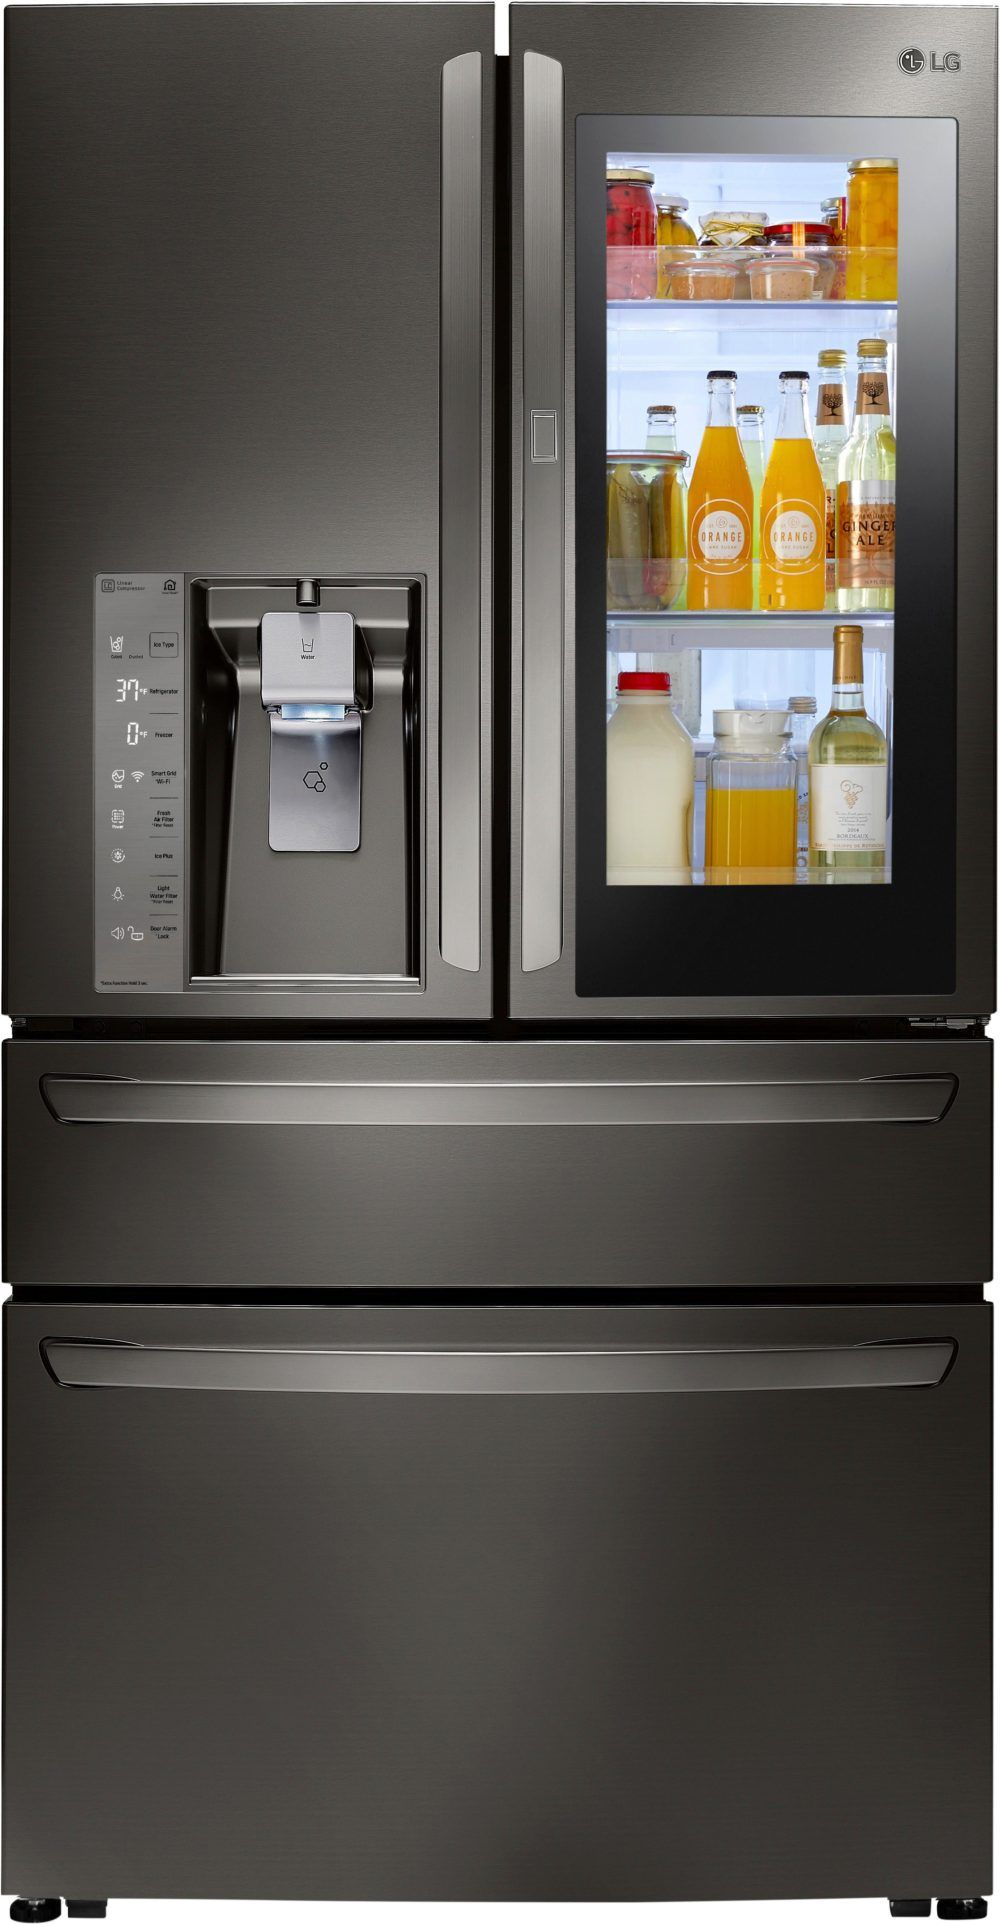 5 Reasons You Need The Lg Smart Instaview Fridge I 2020